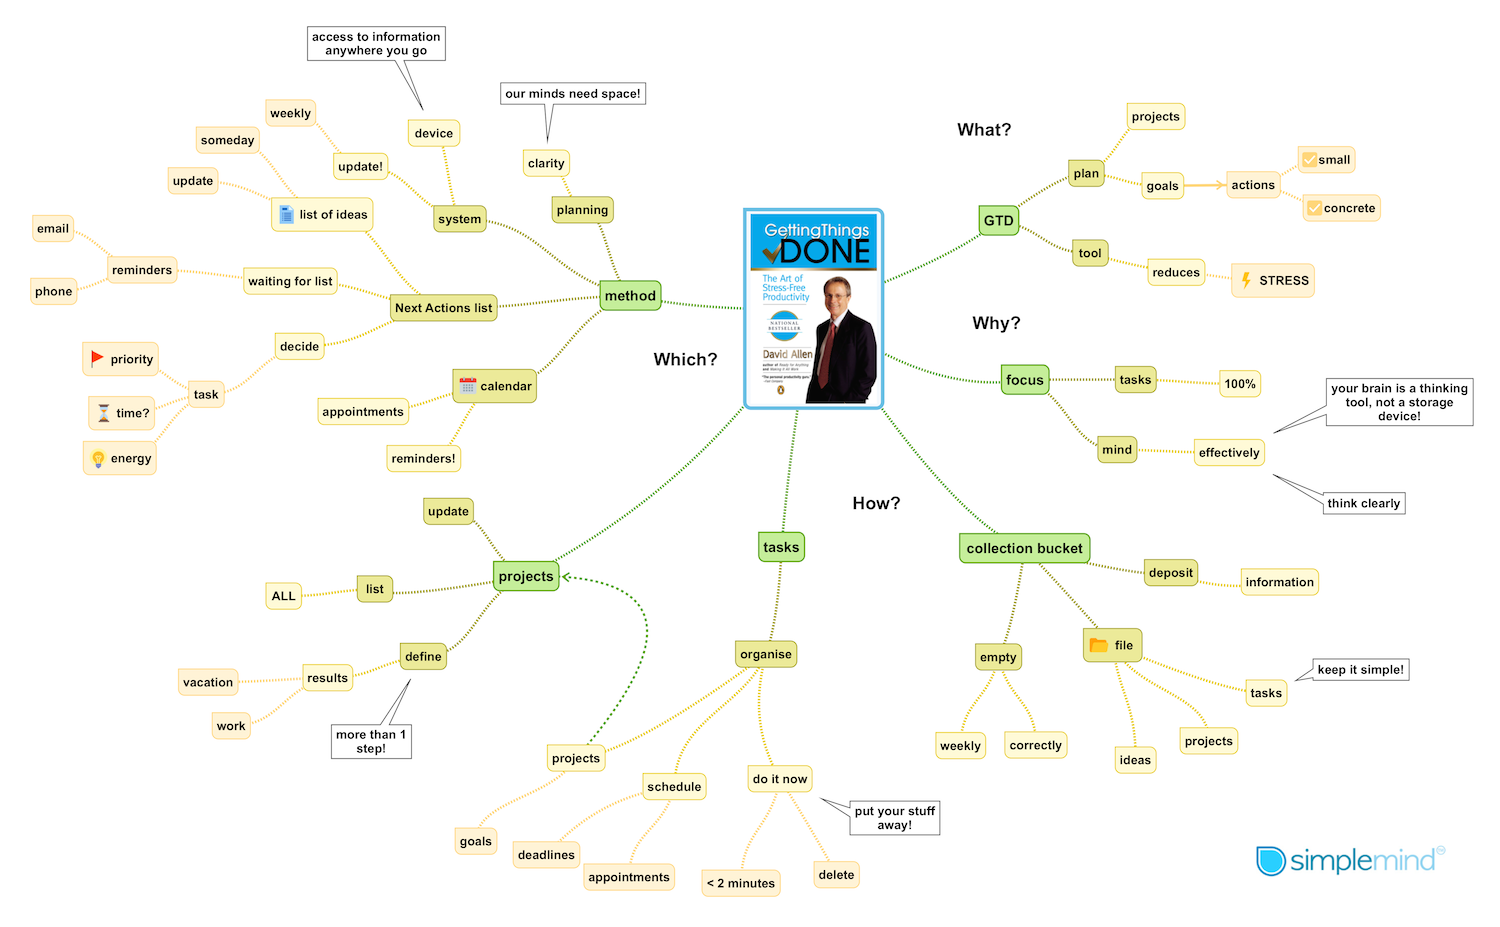 a book summary of Getting Things Done in a mind map